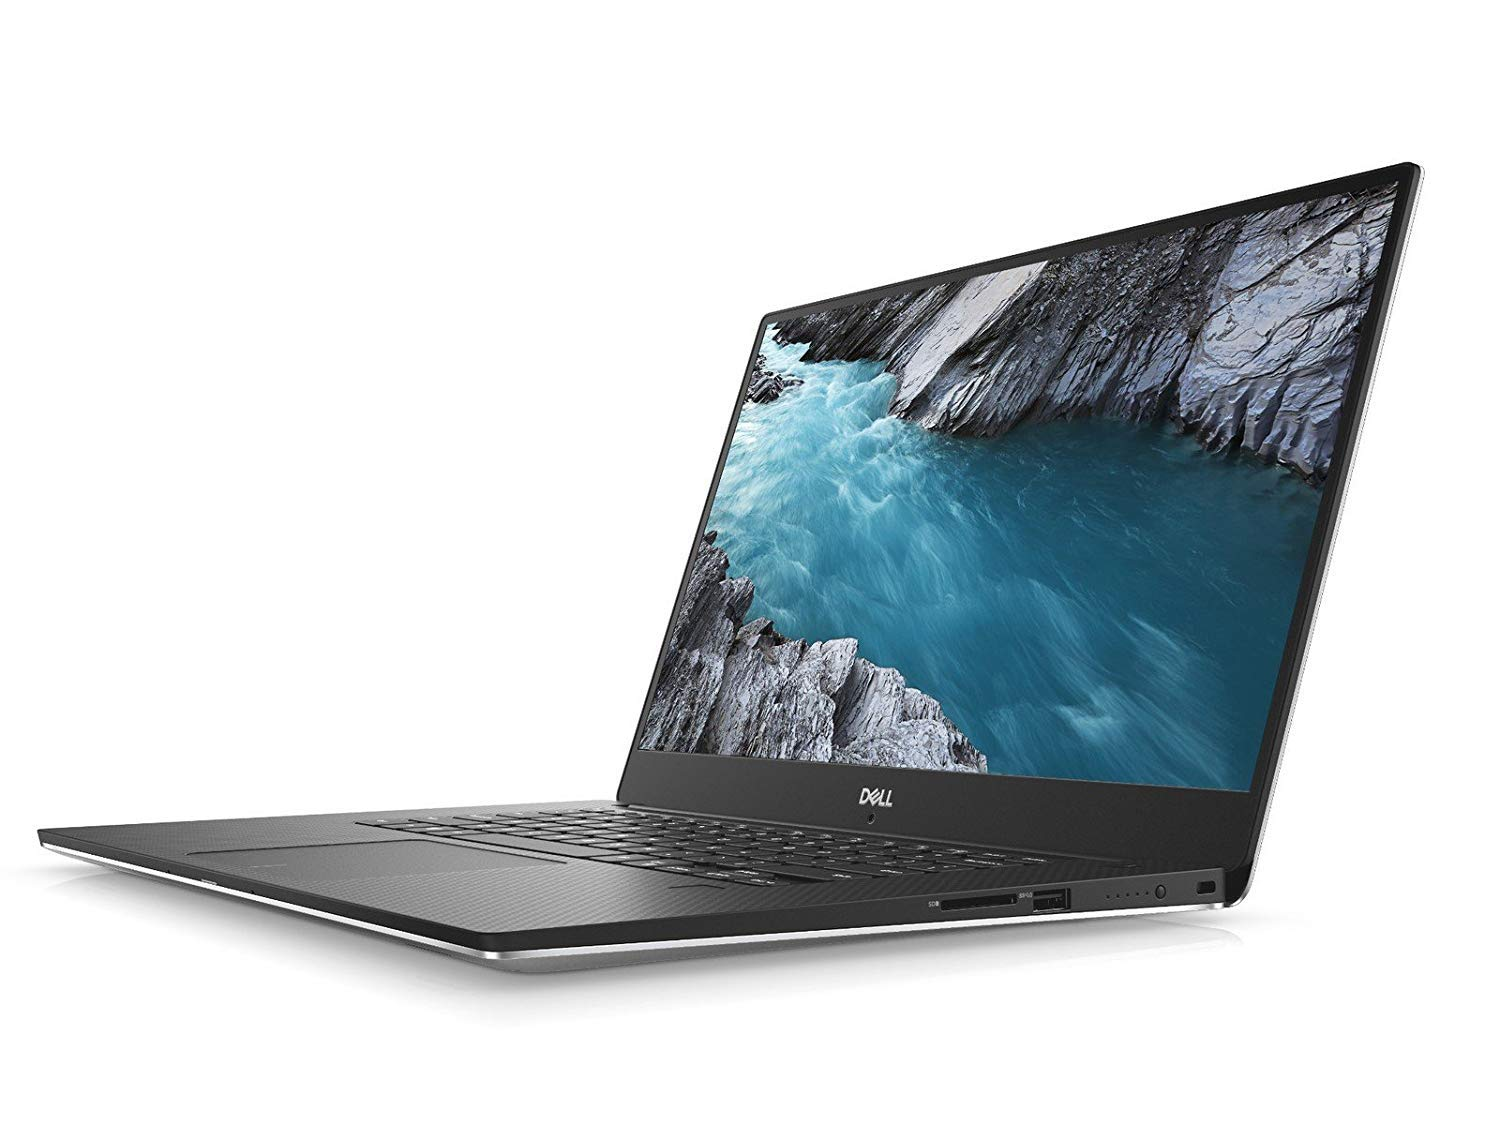 Best Laptop for Rendering And Gaming